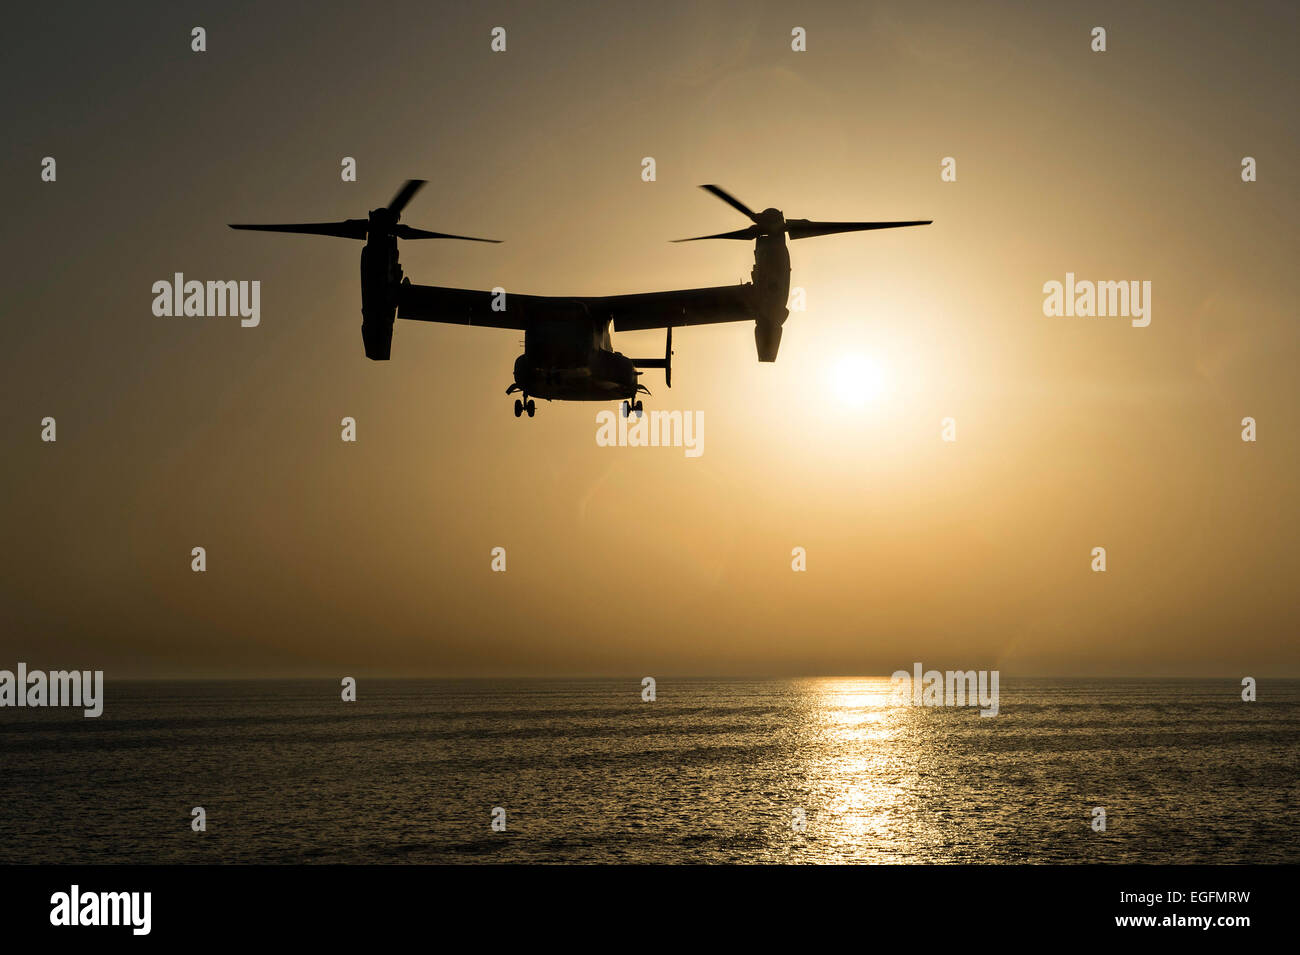 A US Marine Corps MV-22B Osprey tilt rotor aircraft prepares to land on the flight deck of the amphibious transport - Stock Image